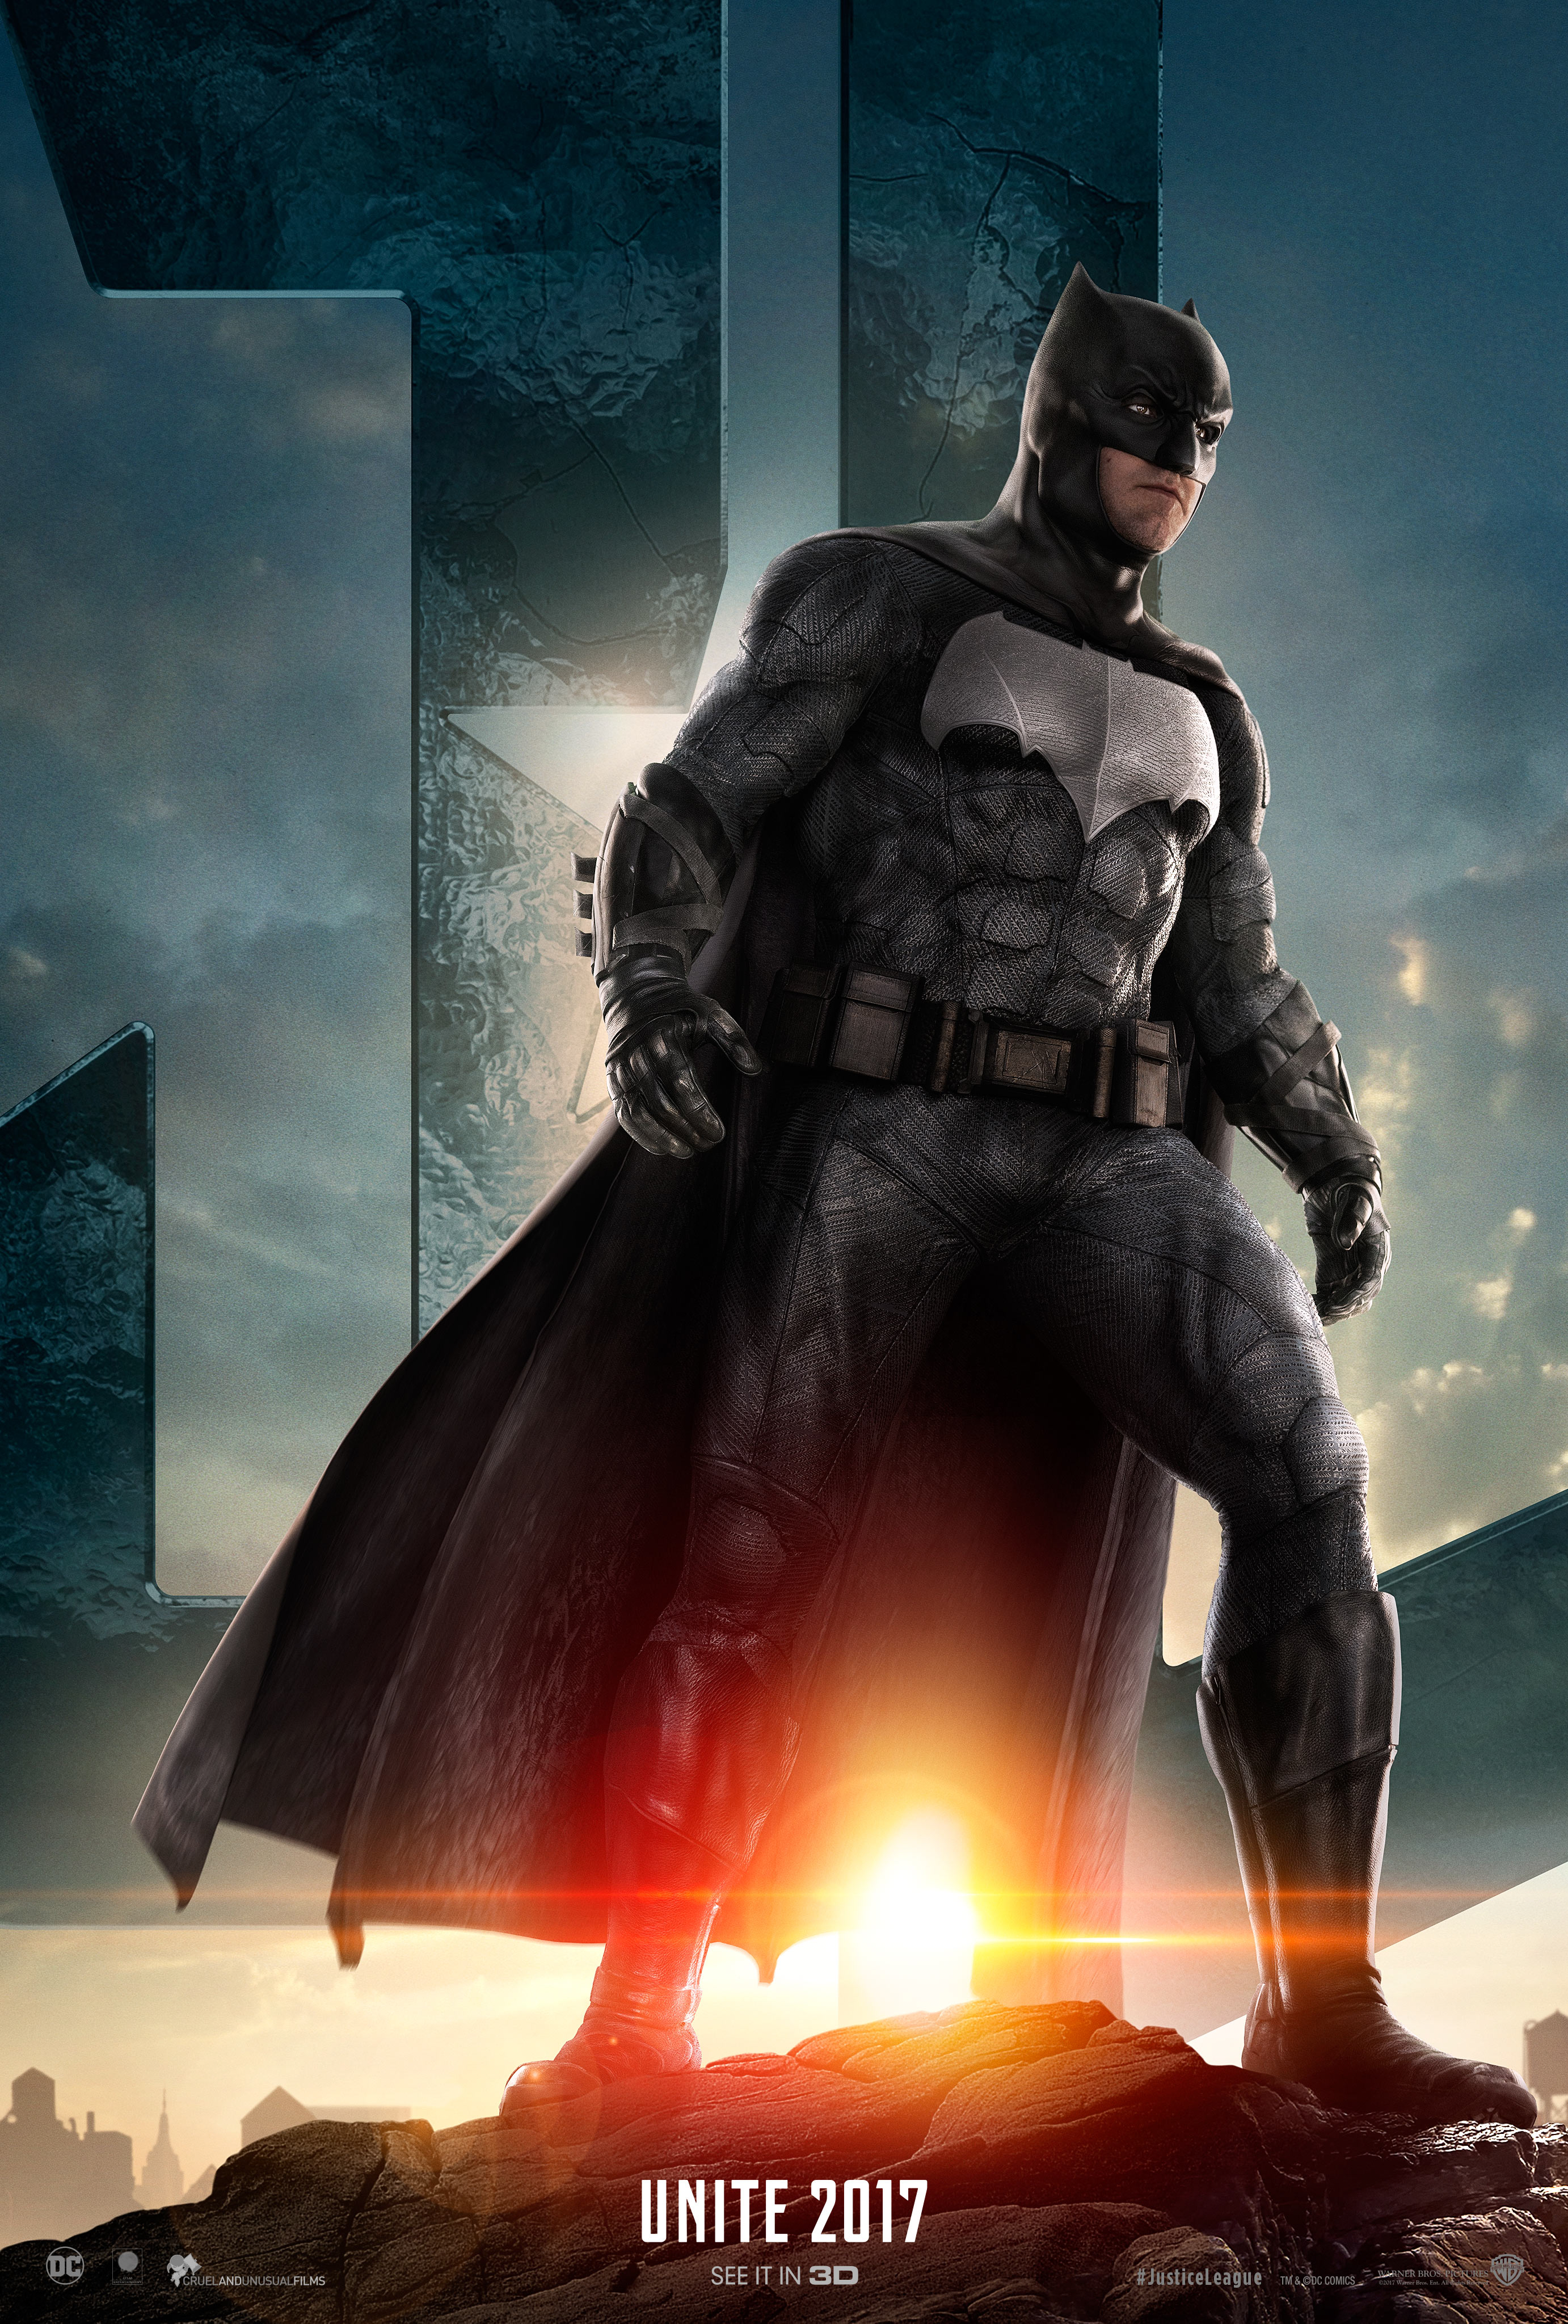 New JUSTICE LEAGUE Teaser Trailers and Character Posters for Aquaman, Batman, Flash (more to come)!